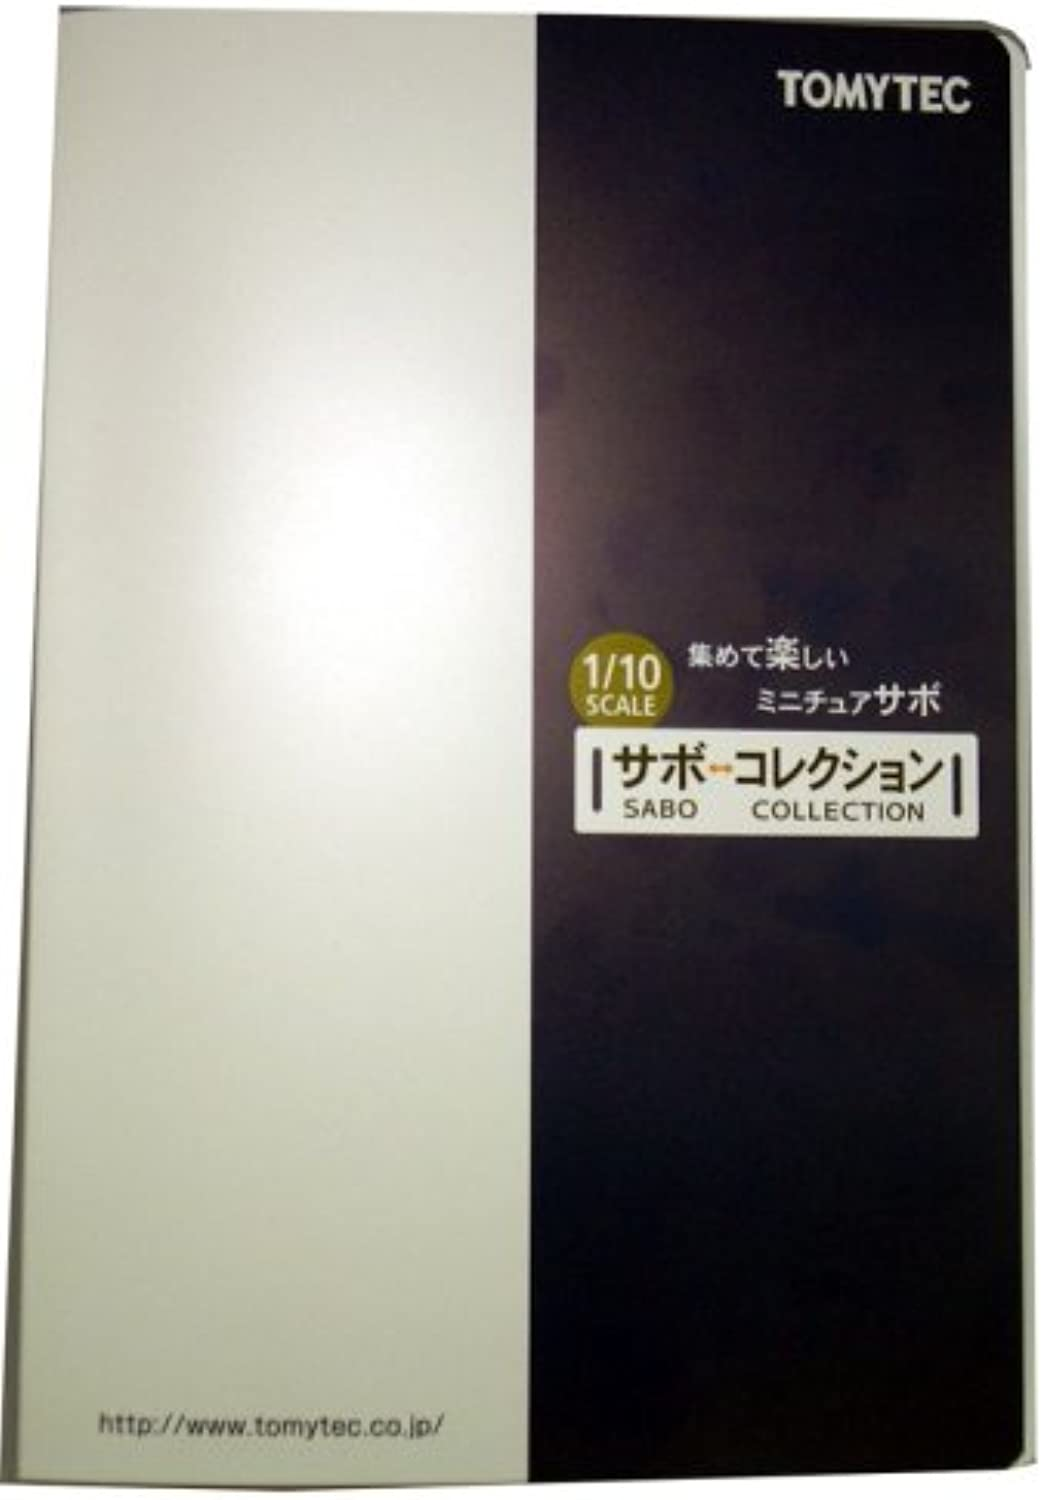 1 700 Grade Up Parts Series No.83 Chodokyu Battleship Yamato end type-Etched Parts (japan import)